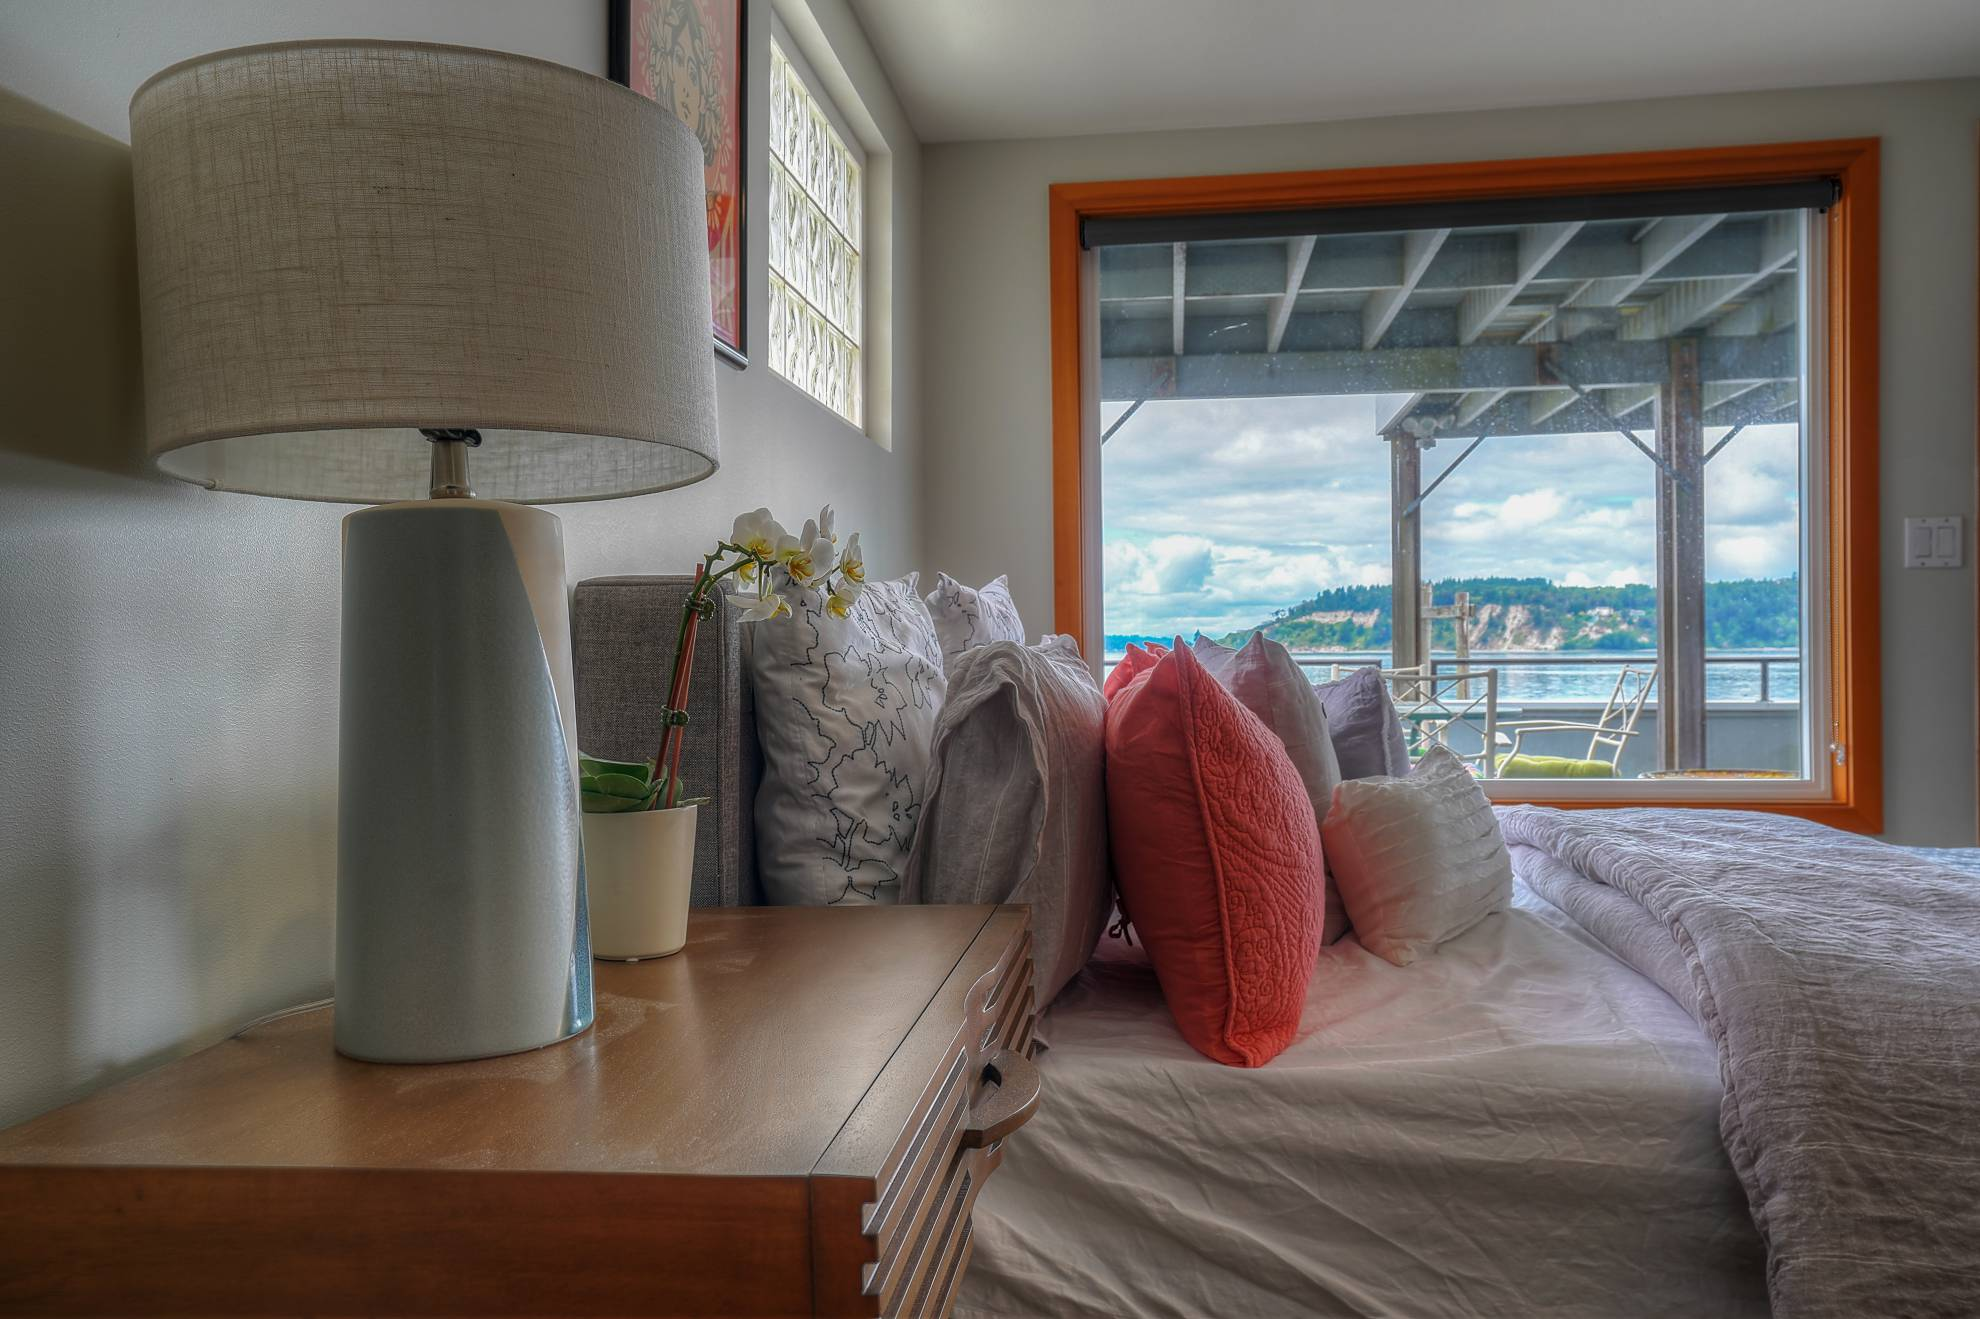 Master bedroom with large window and porch overlooking the water